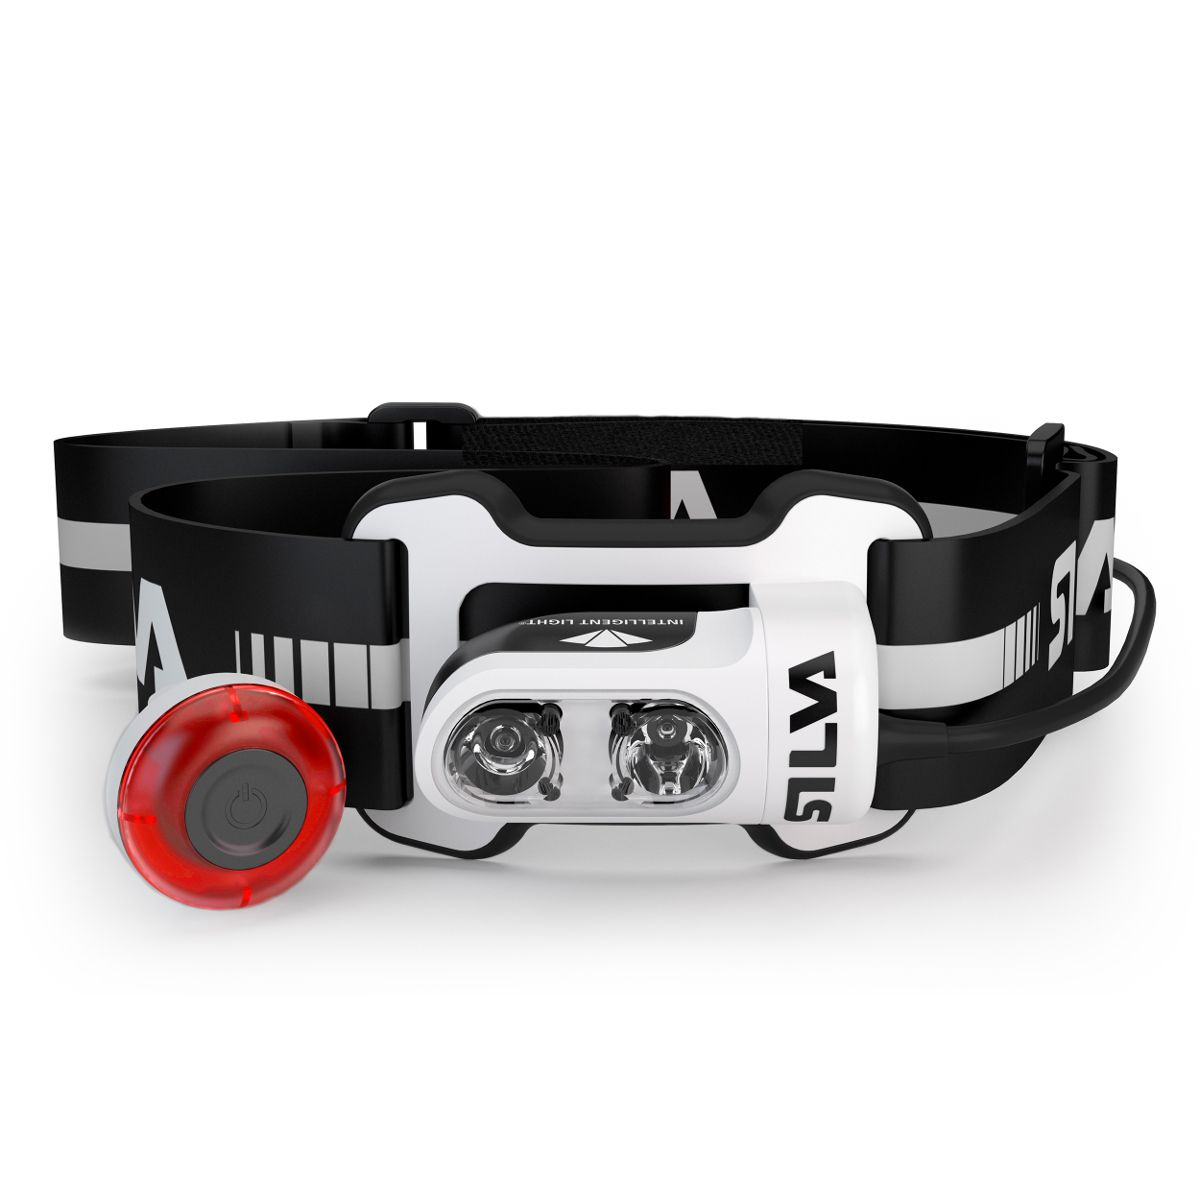 Trail Runner 4 Ultra headlamp